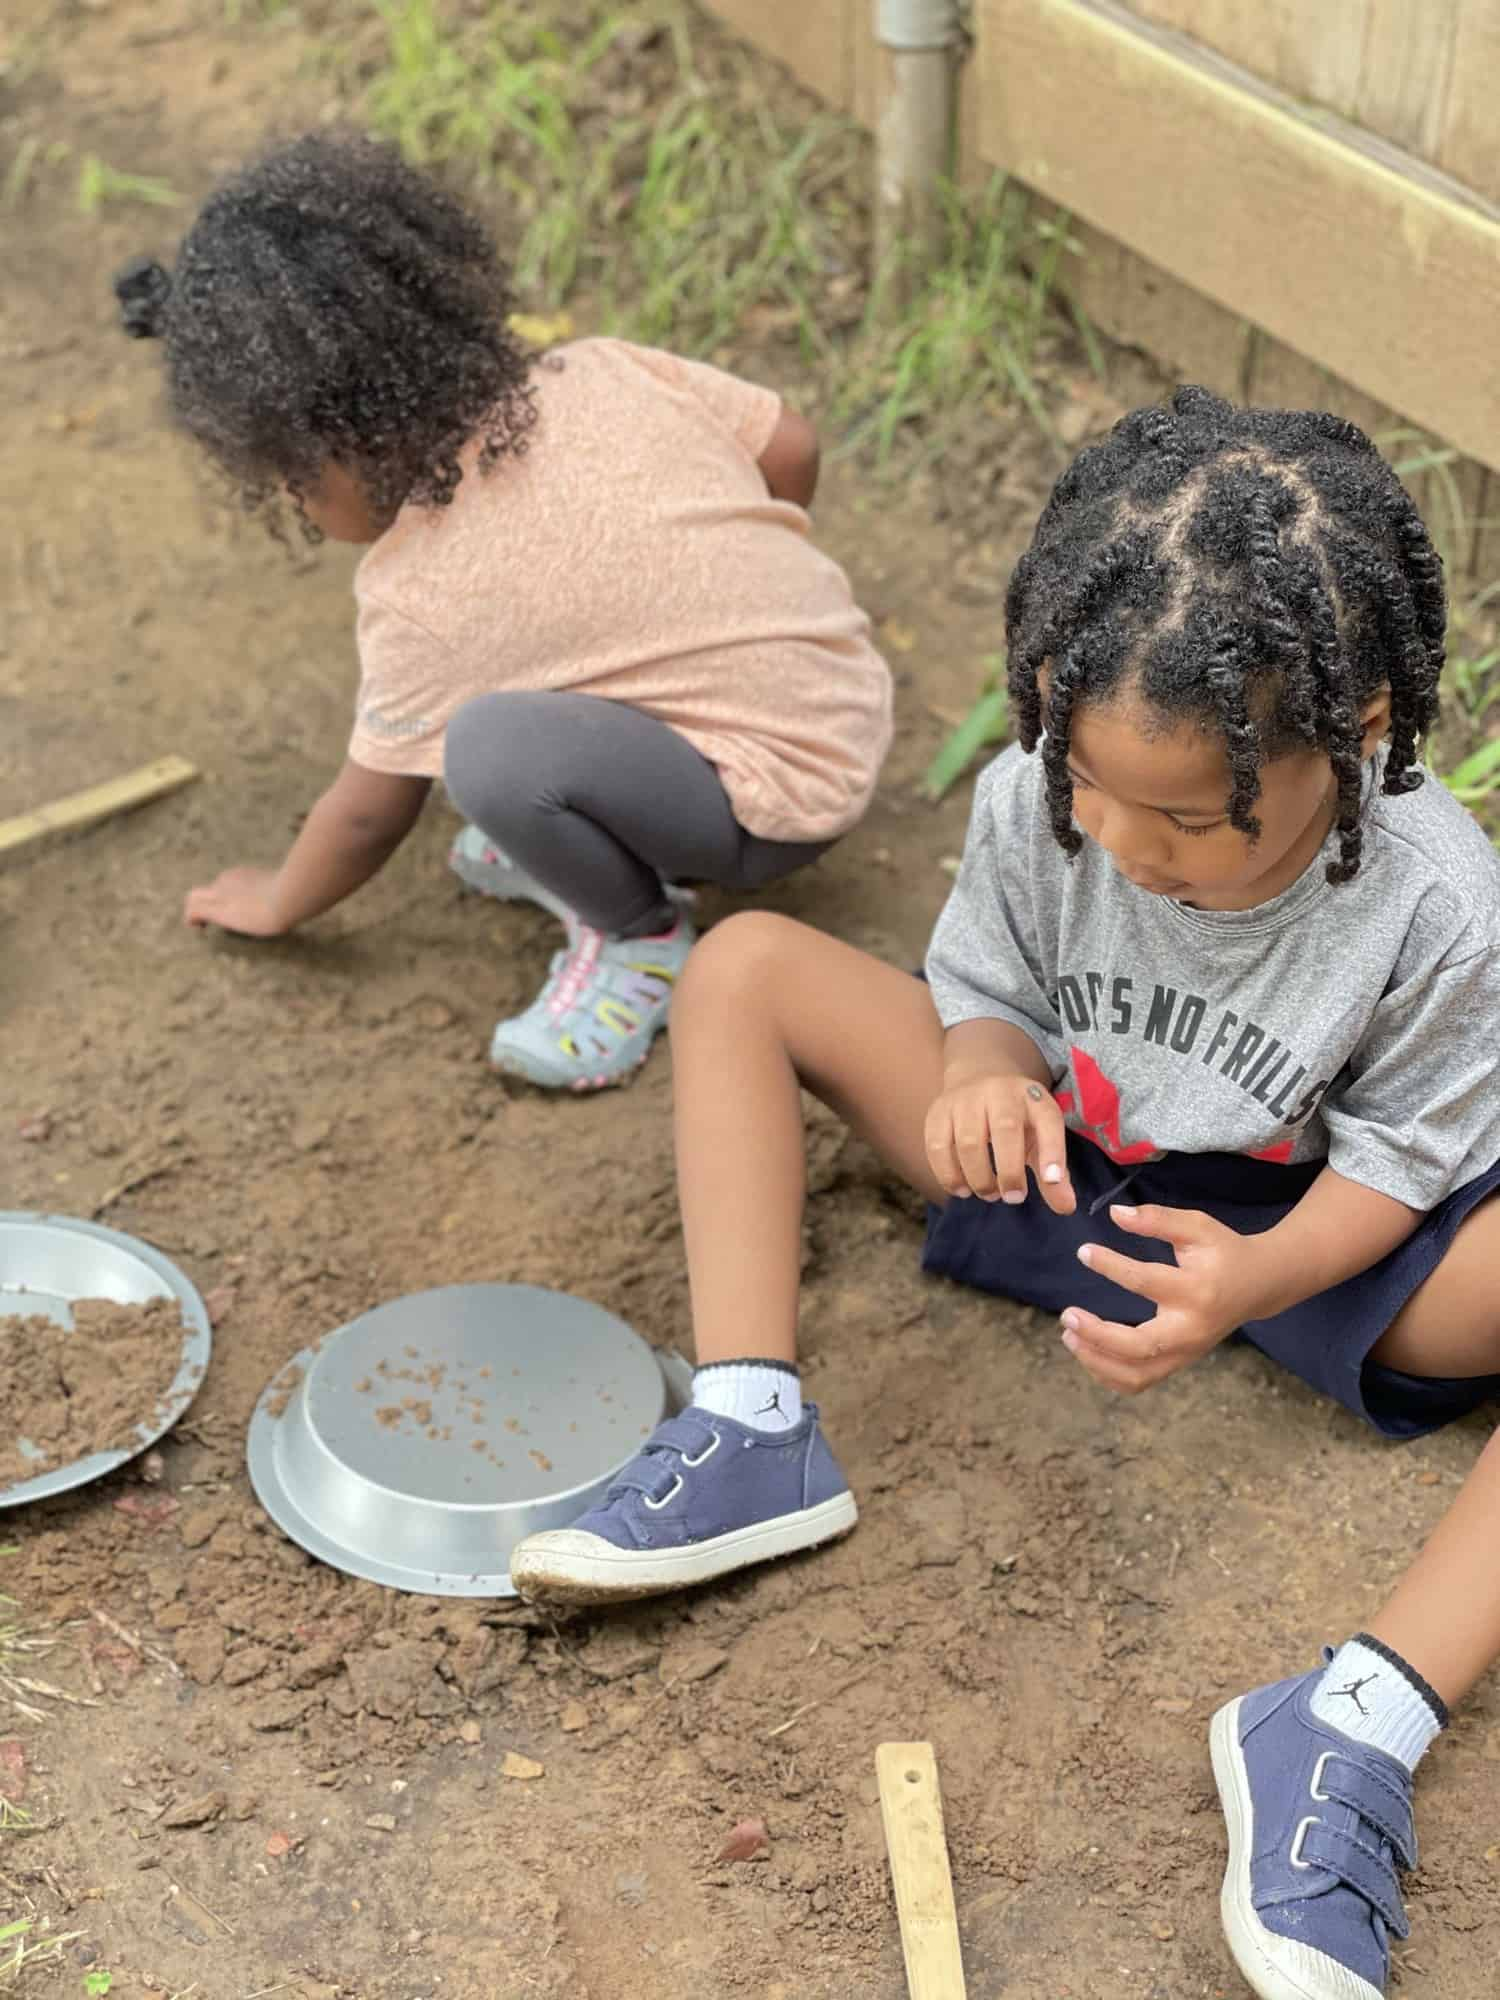 Playing with Bugs - finding nature in your own backyard